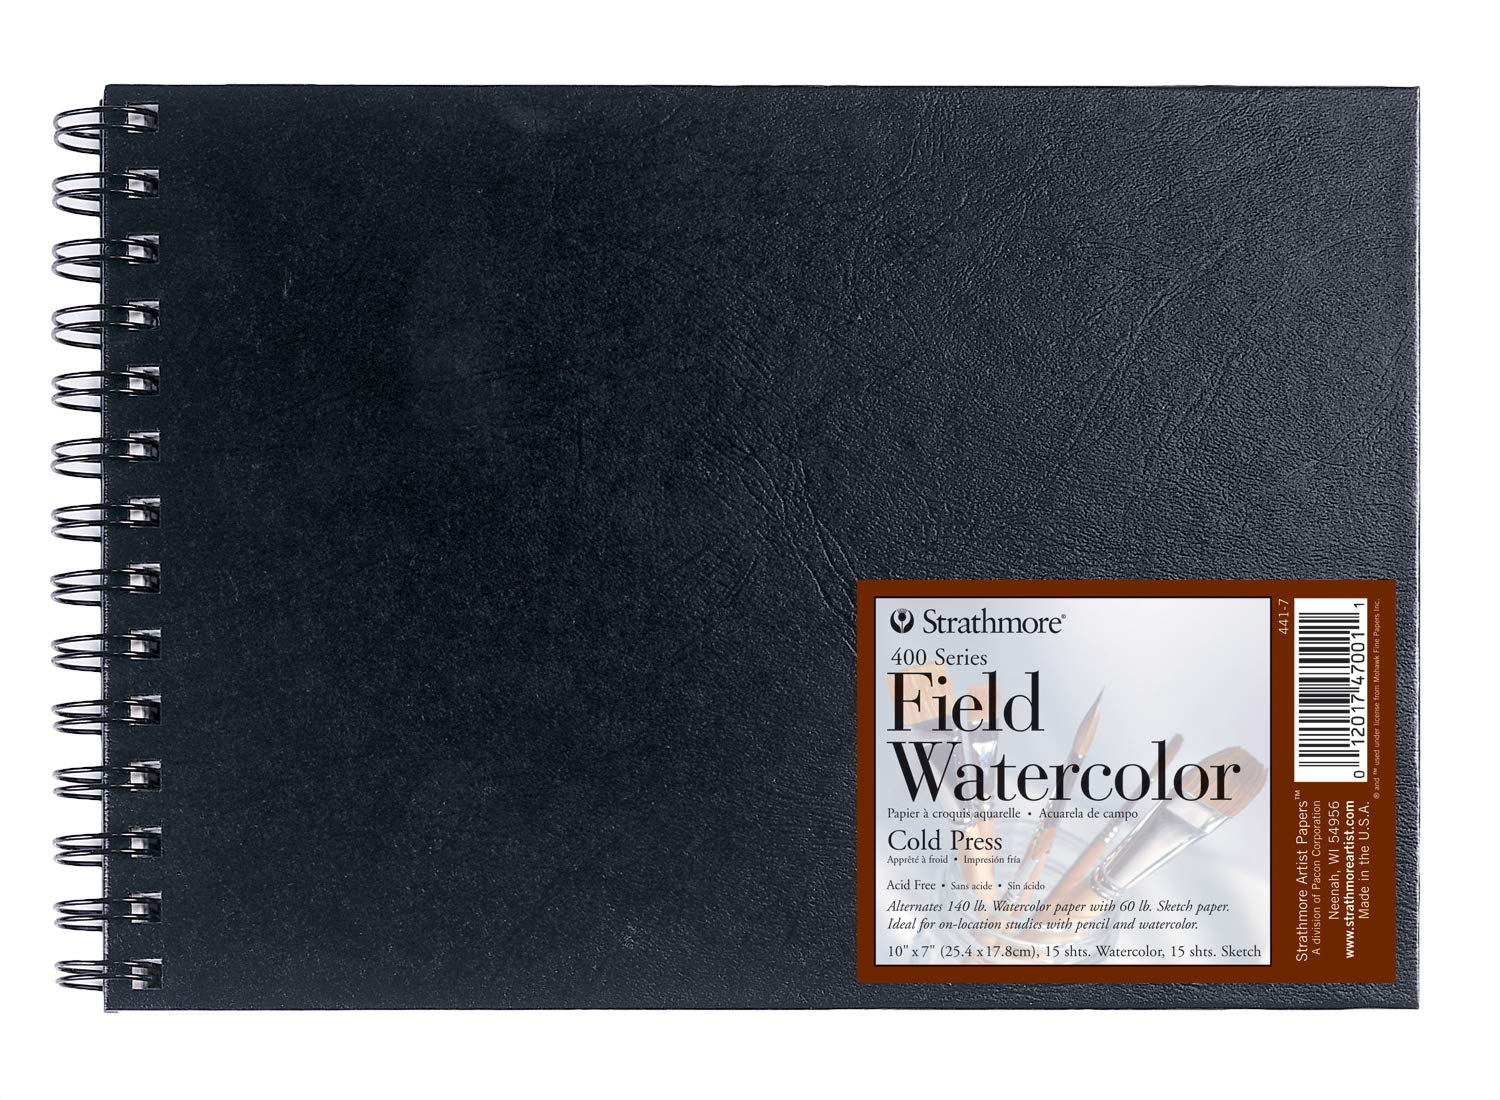 Strathmore Field Watercolor Book 10X7 by Strathmore Strathmore Artist Papers FBA_441-7